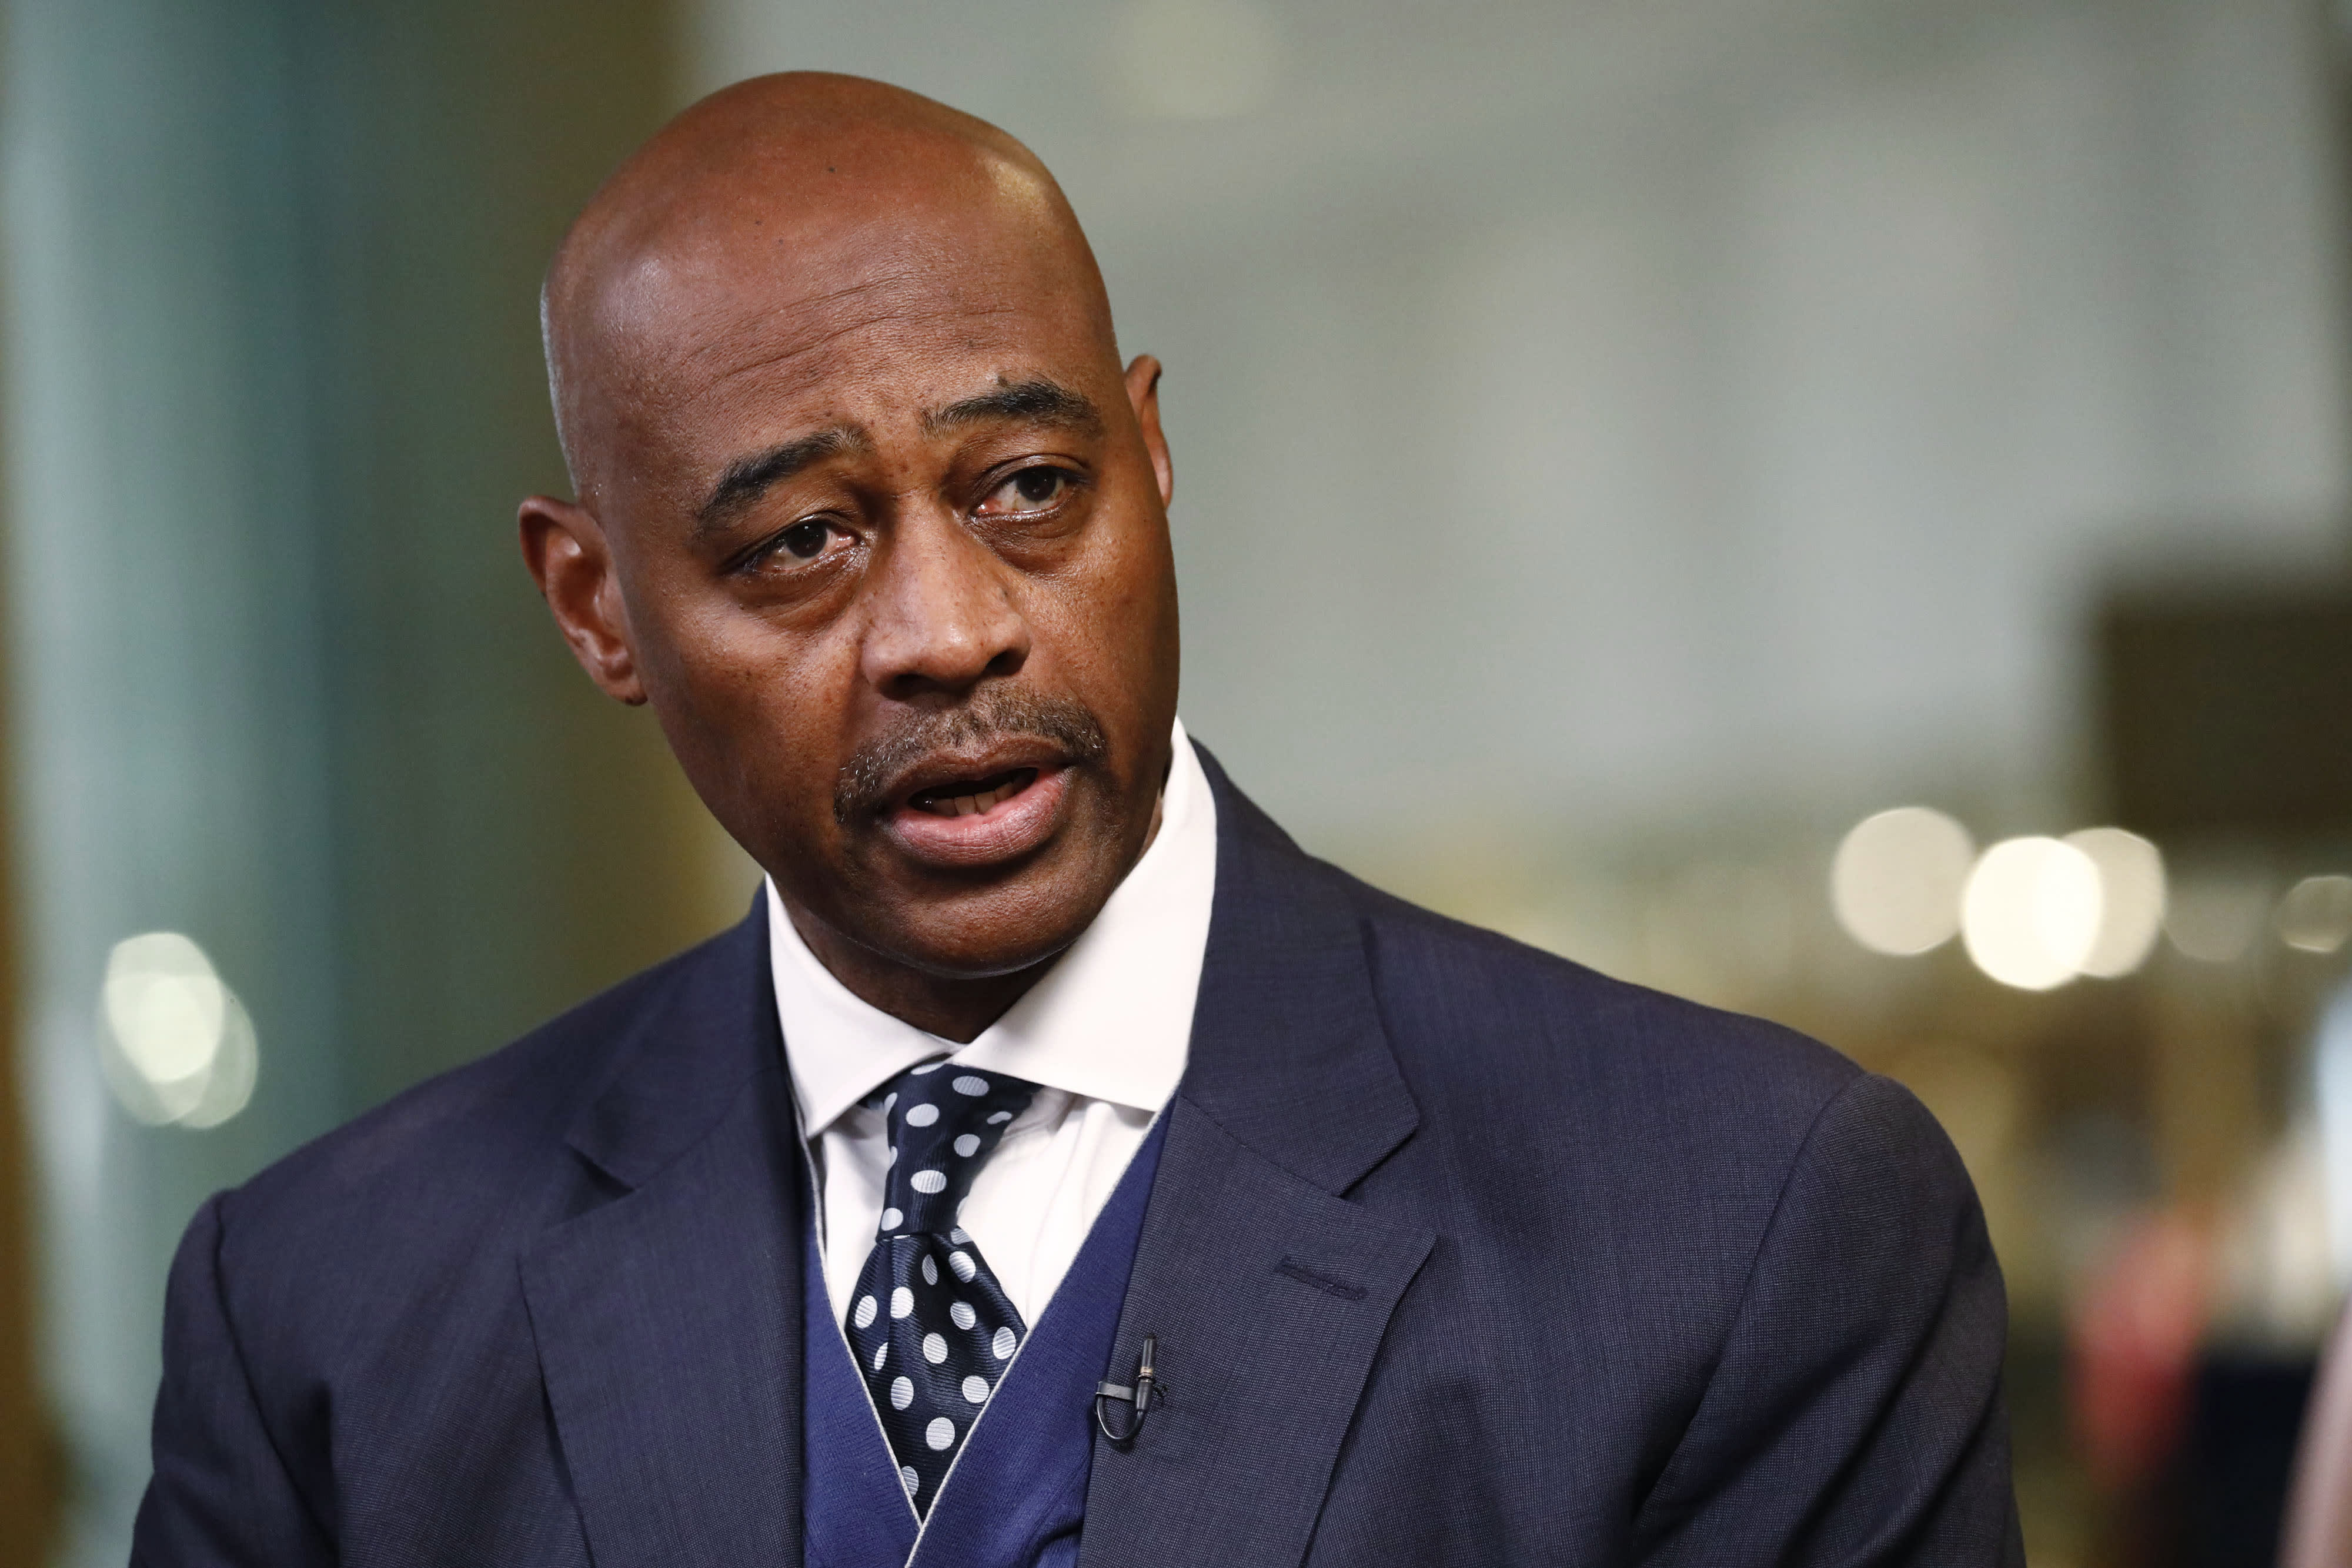 Citigroup executive Ray McGuire, a political moderate, considers running for mayor of New York